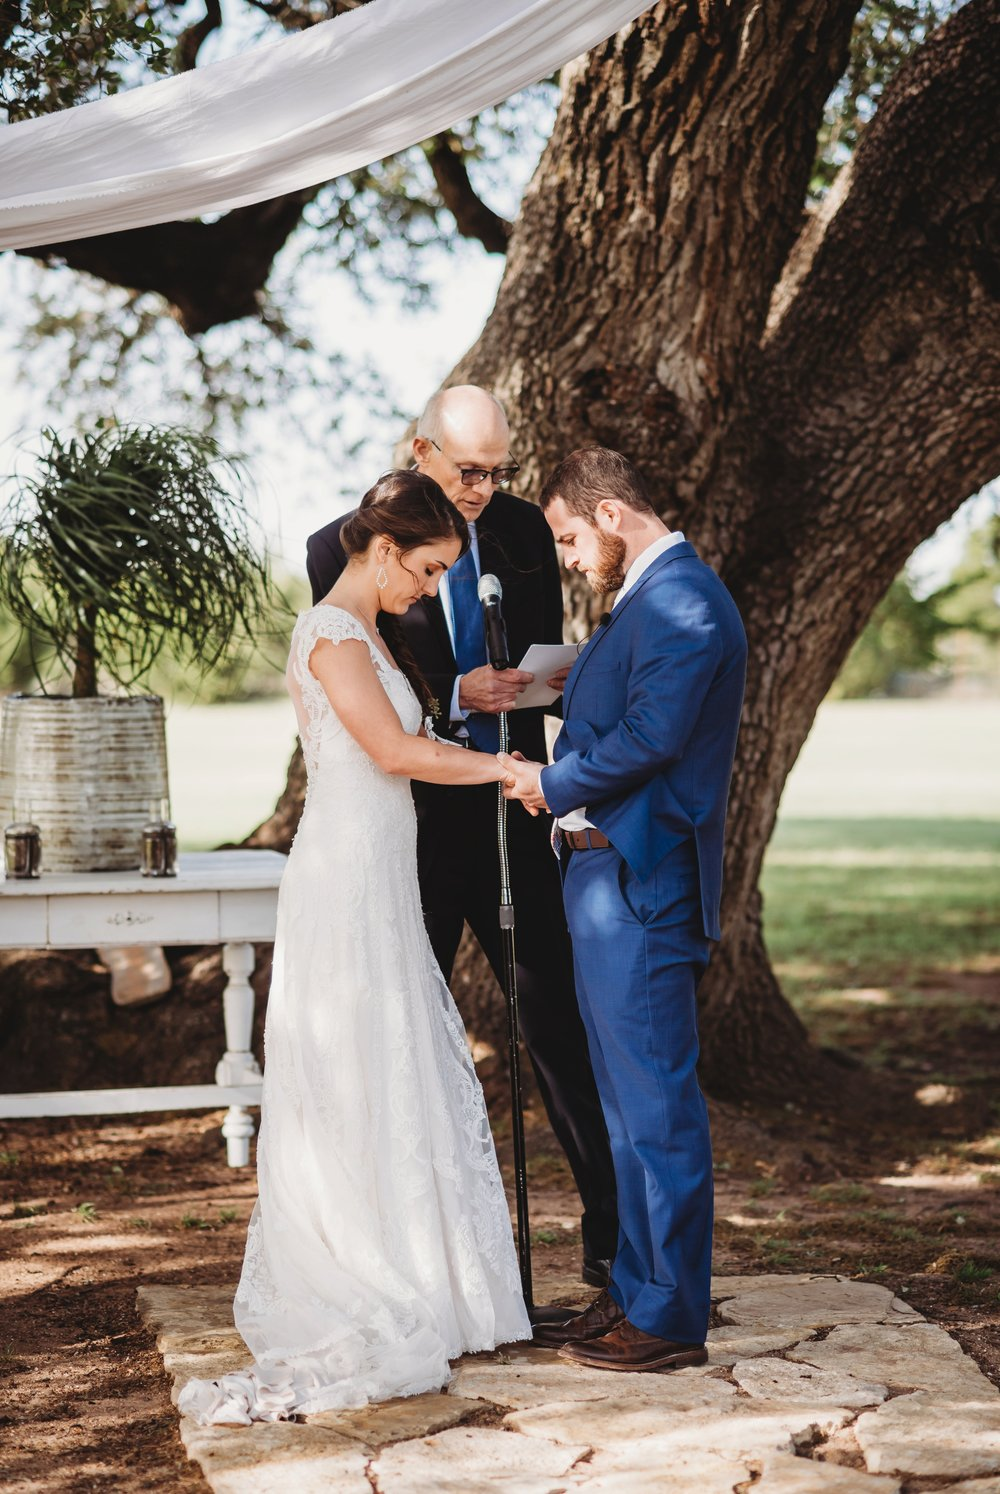 The-White-Fiore-Five-Oaks-Farm-Fort-Worth-Wedding-Planner-Ceremony_022.jpg